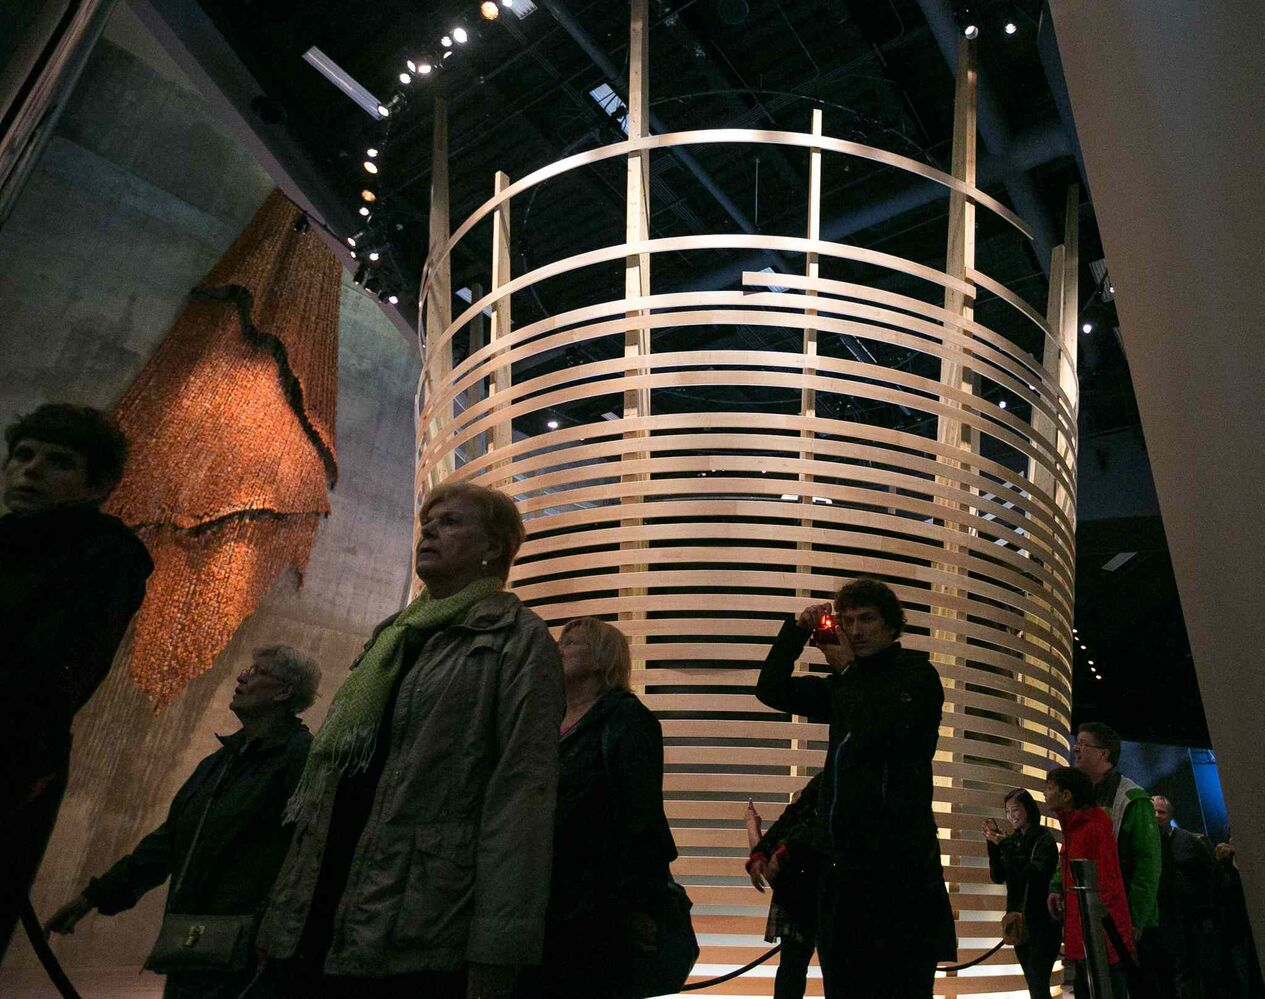 Visitors walk past the inverted woven basket in the Indigenous Perspectives gallery at the Canadian Museum for Human Rights on Saturday. Thousands had reserved tickets for the four gallery preview tour on Saturday and Sunday. That is only four of 11 galleries, the rest of which open Sept. 27. (Melissa Tait / Winnipeg Free Press)